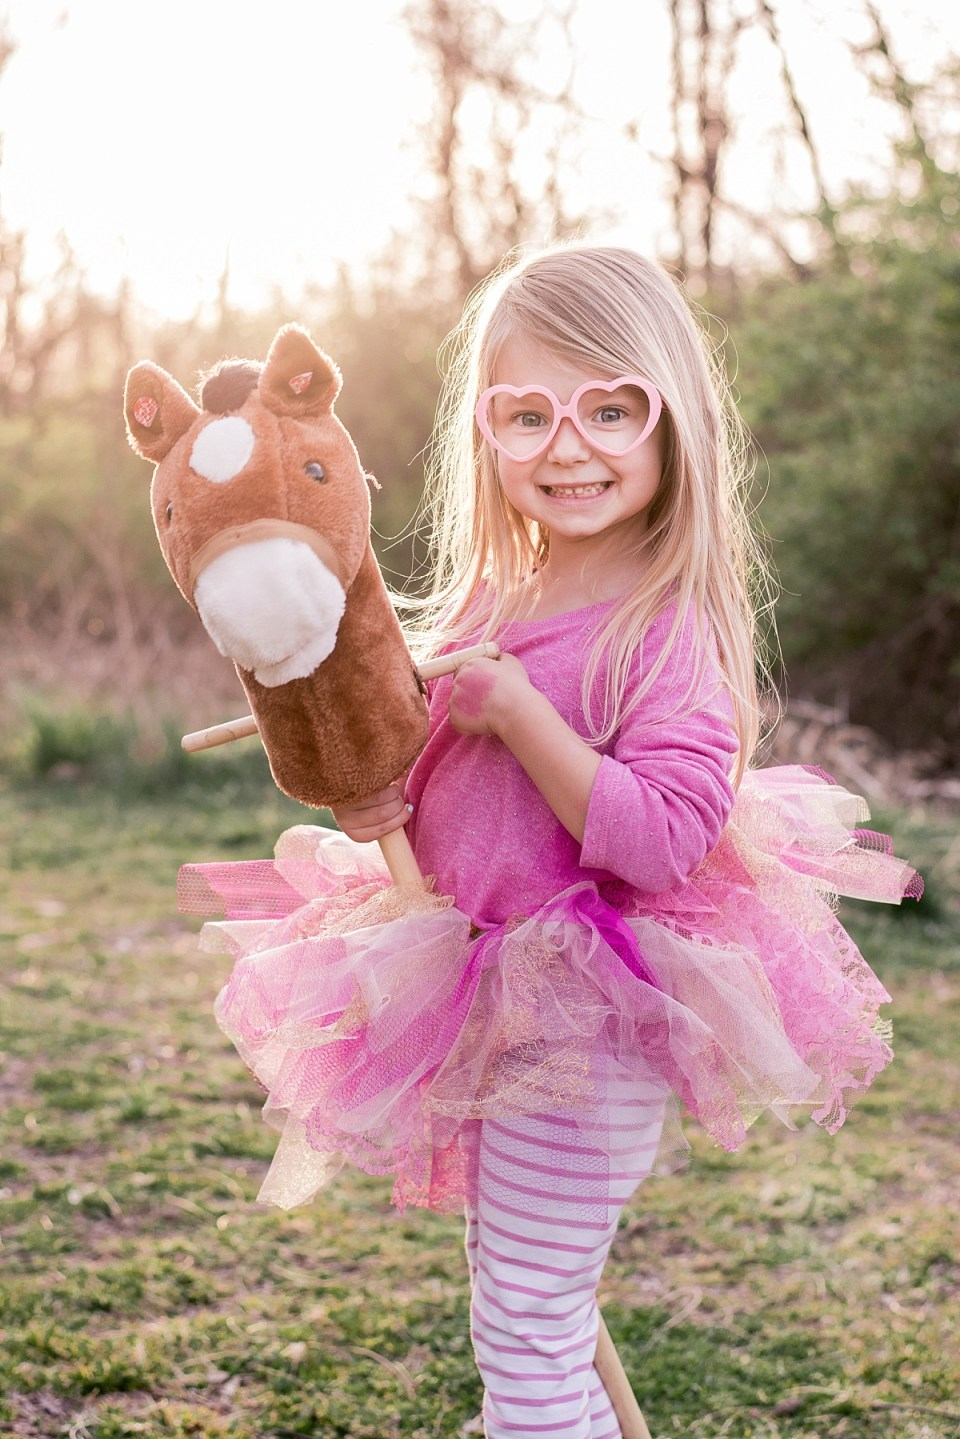 Fifth Birthday Pics with horse